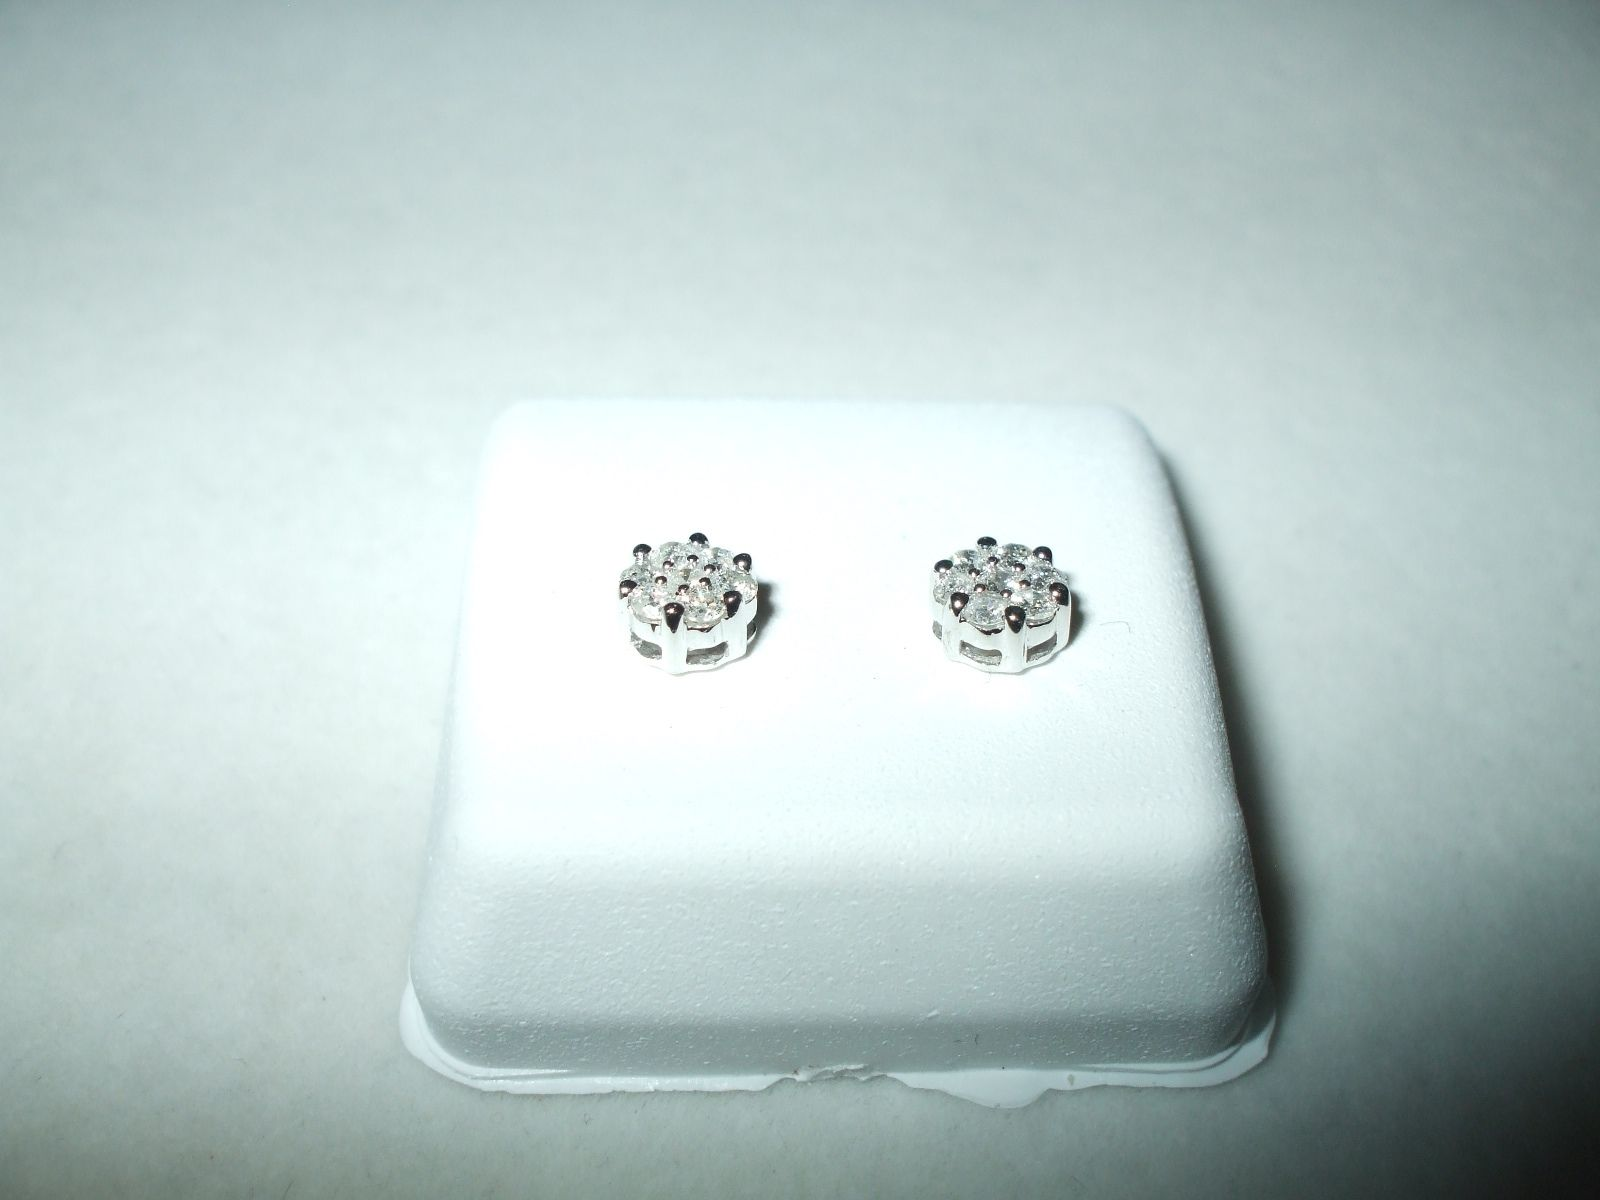 Genuine .25 cttw Diamond Cluster Earrings 14K White Gold Screw Backs NWT $495